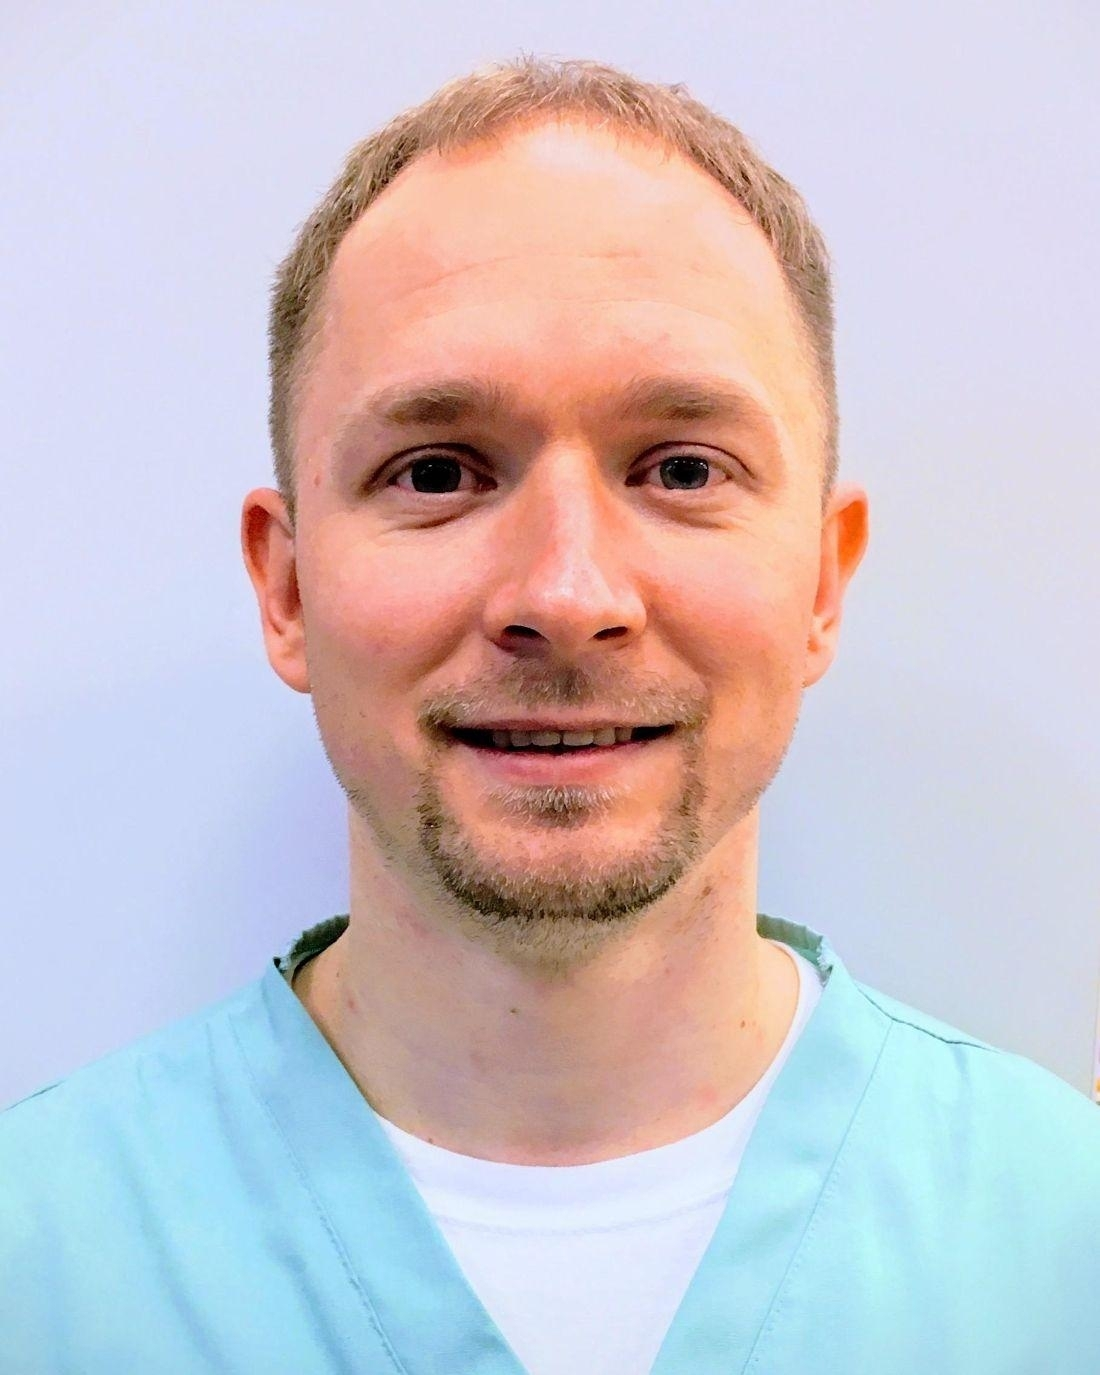 Ruslan - AssistantMy name is Ruslan Rusanov, I am a dental assistant, currently I am studying in dental school, and I want to became a dentist in the US. I am very passionate about dentistry, I feel myself I belong to this field and I want to pursue this career dawn the road.